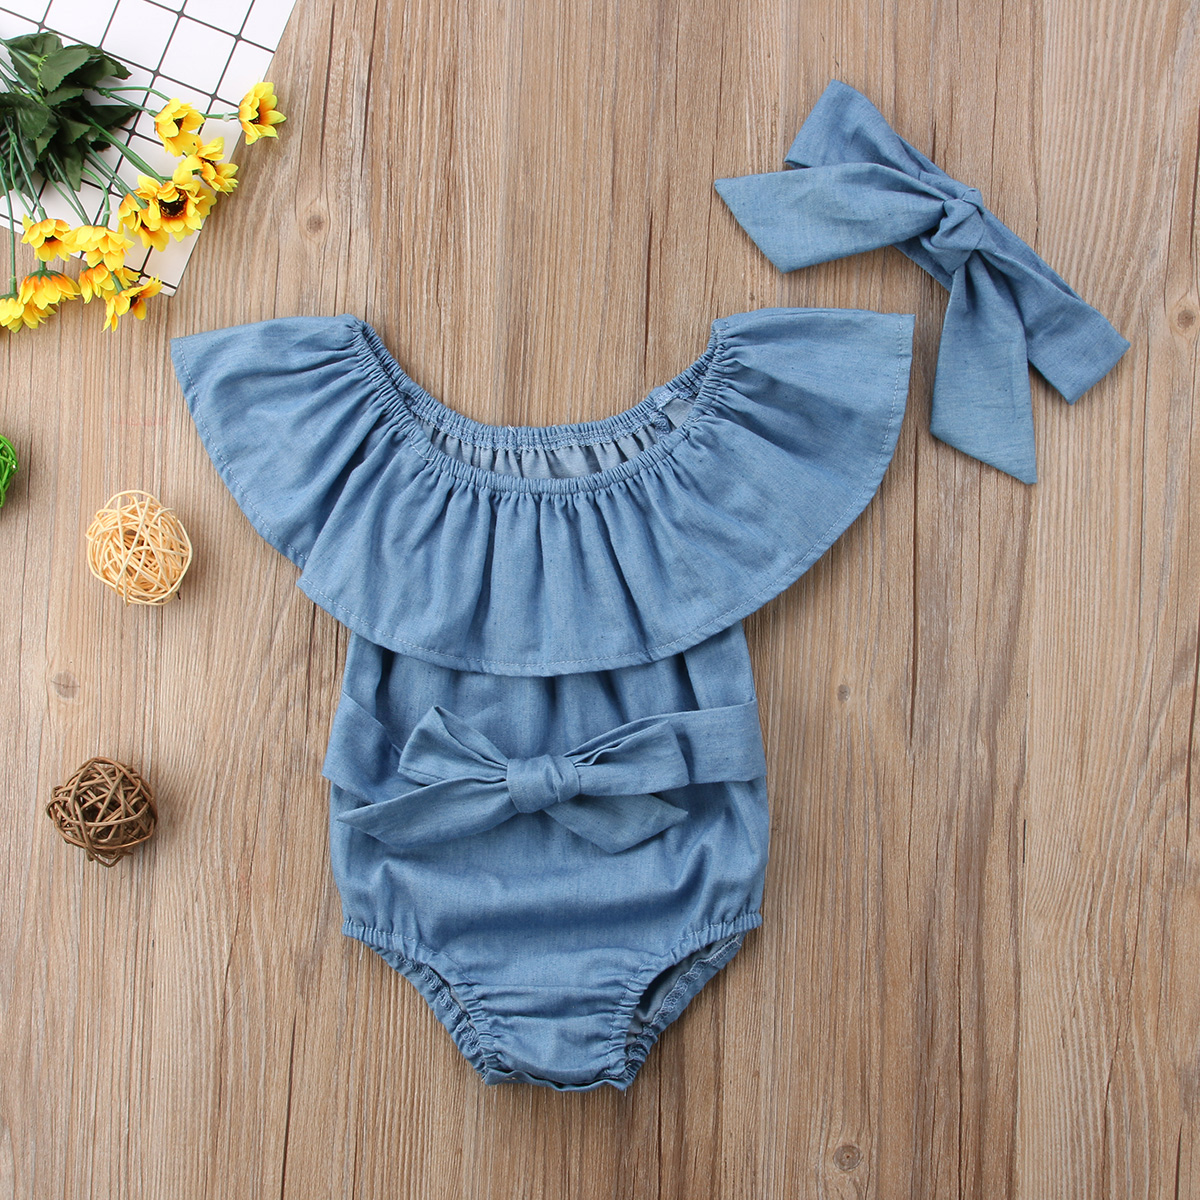 Hot Newborn Baby Girls Front Bowknot Bodysuit Romper Jumpsuit Outfits Clothes